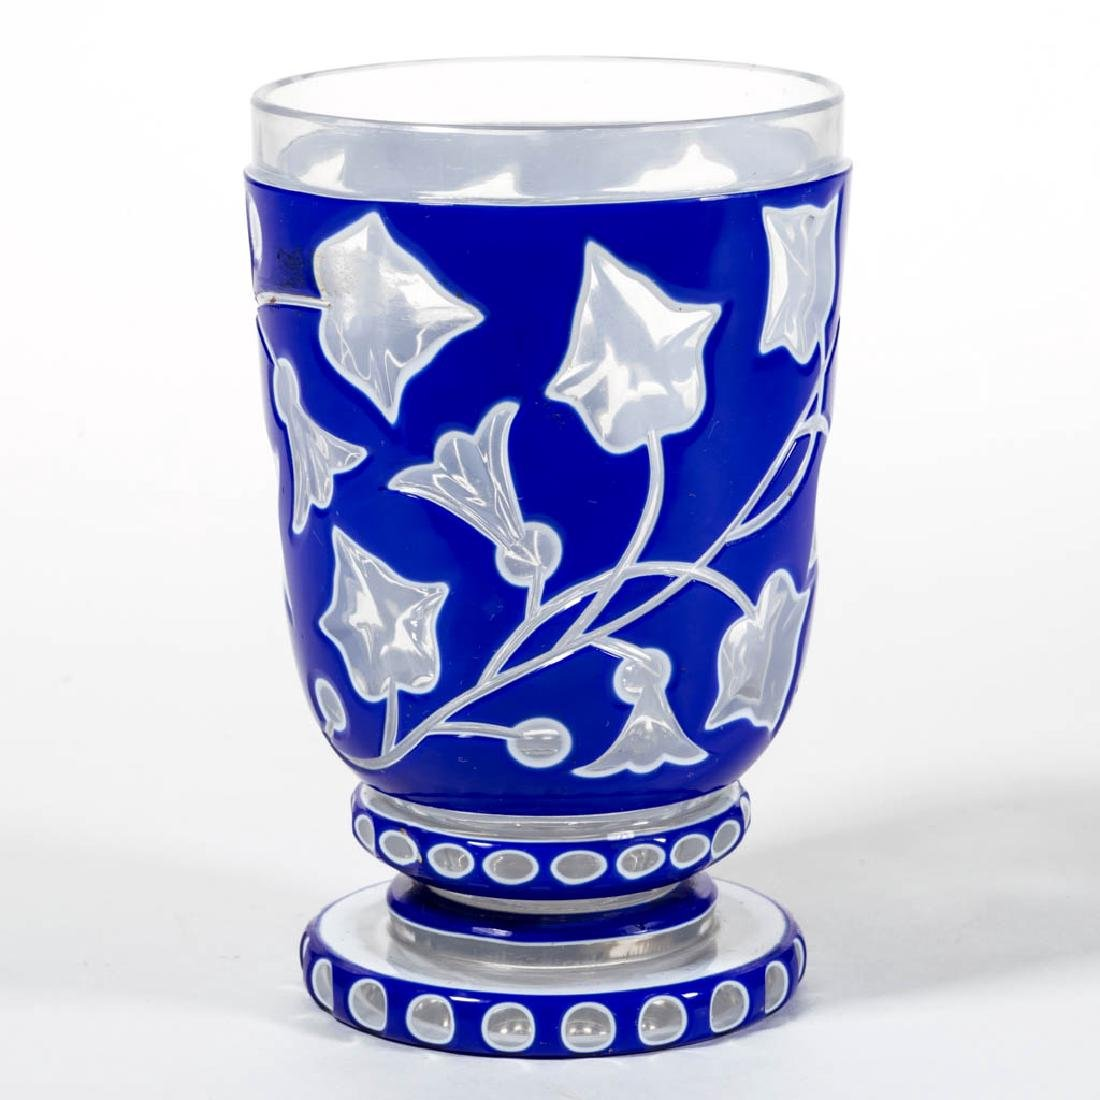 BOHEMIAN CUT DOUBLE-OVERLAY BEAKER / FOOTED TUMBLER